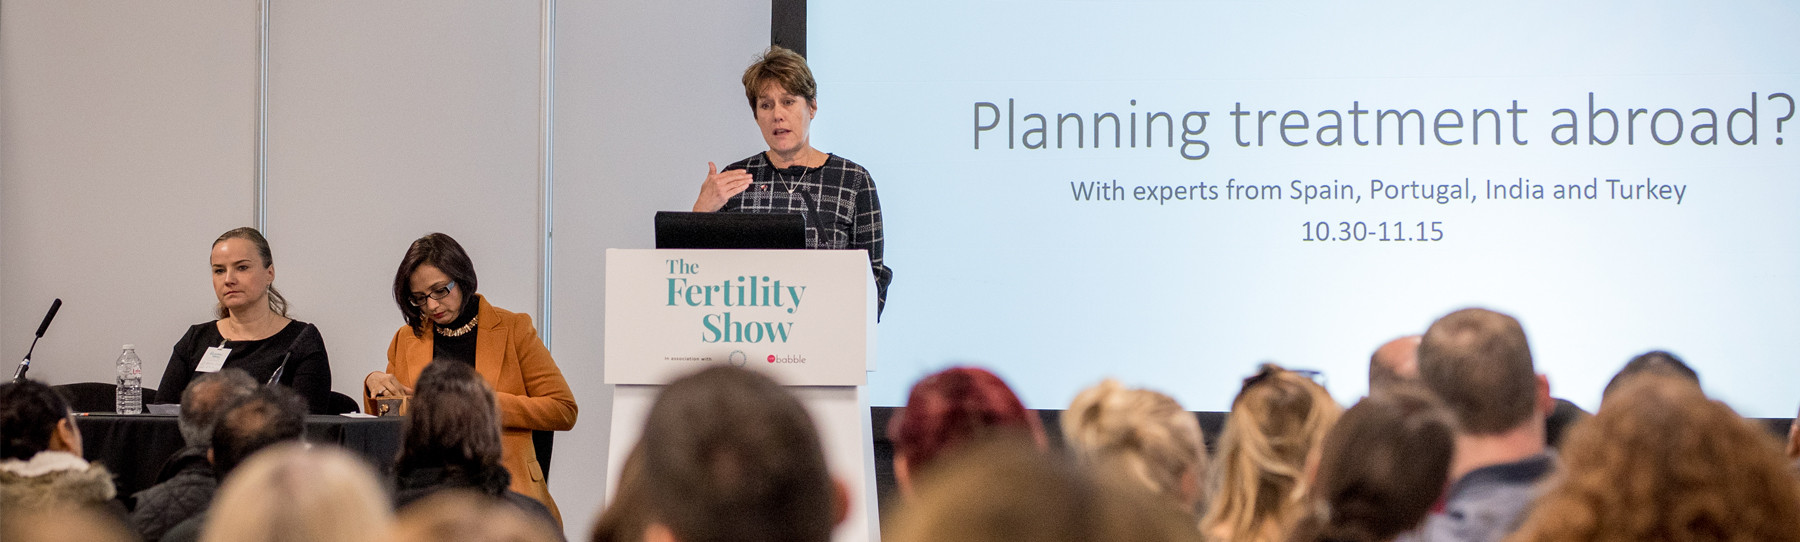 The Fertility Show Seminar Programme 2018